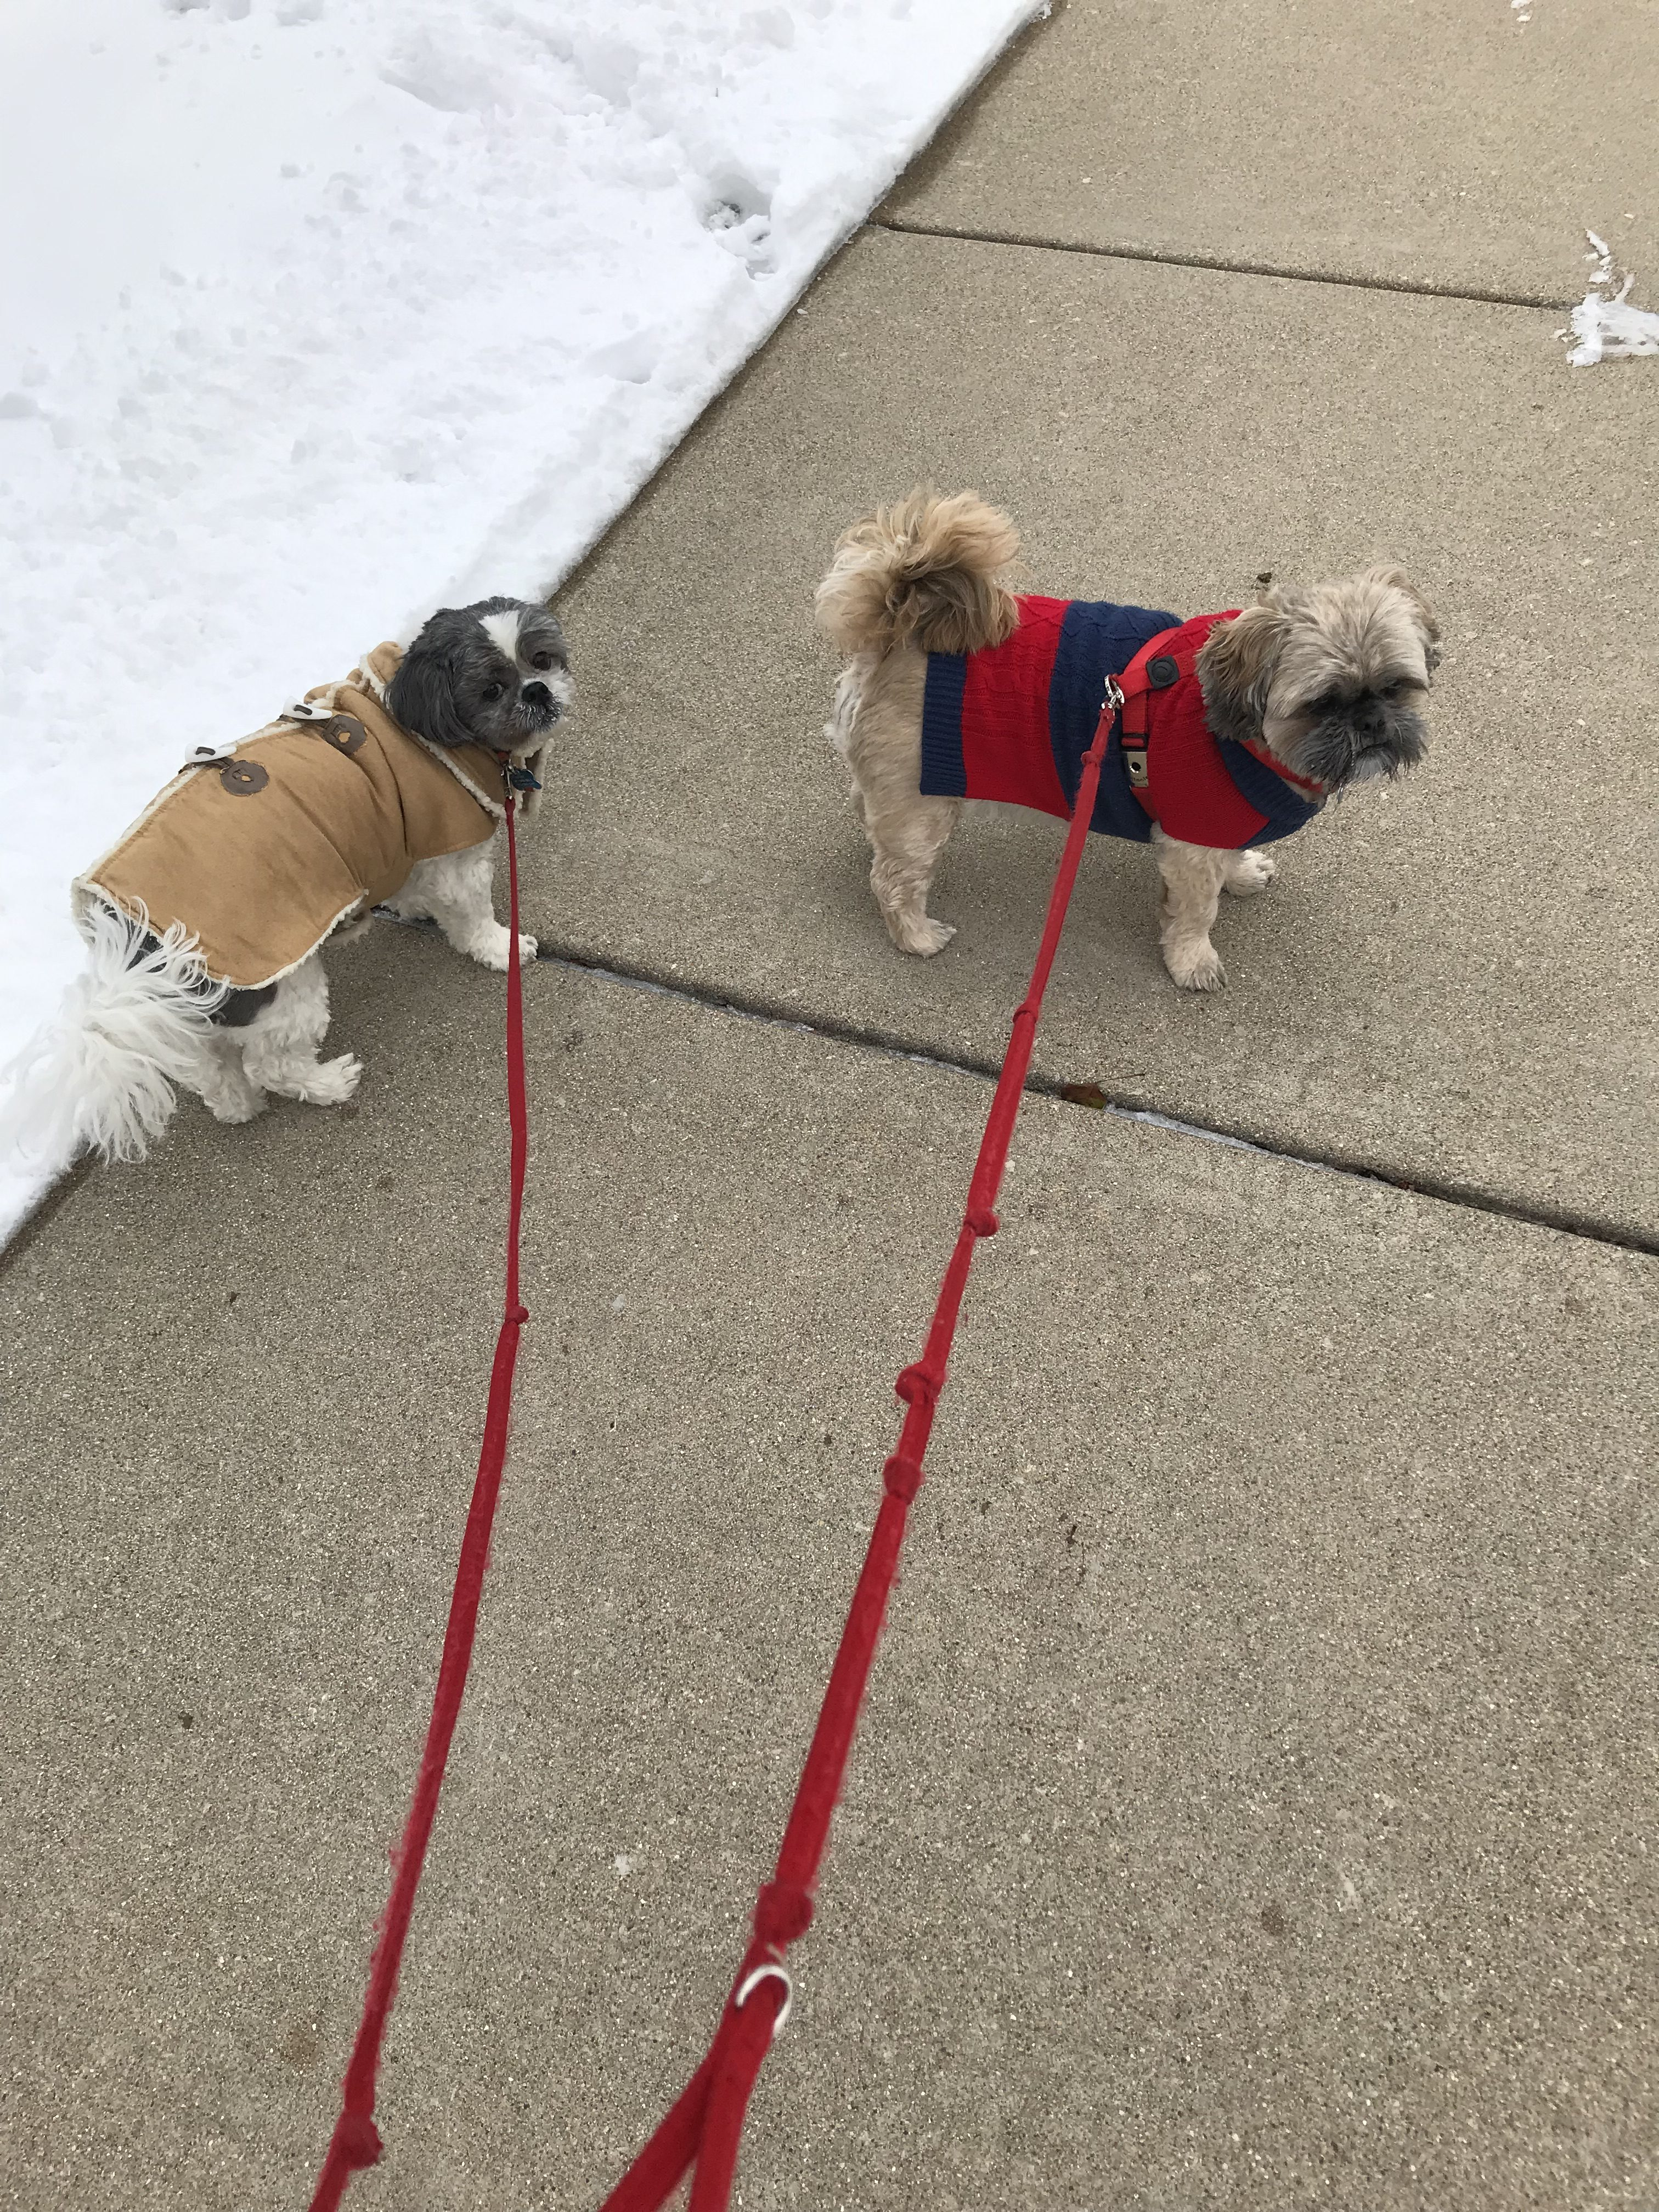 bo and scooter getting out on a cold day